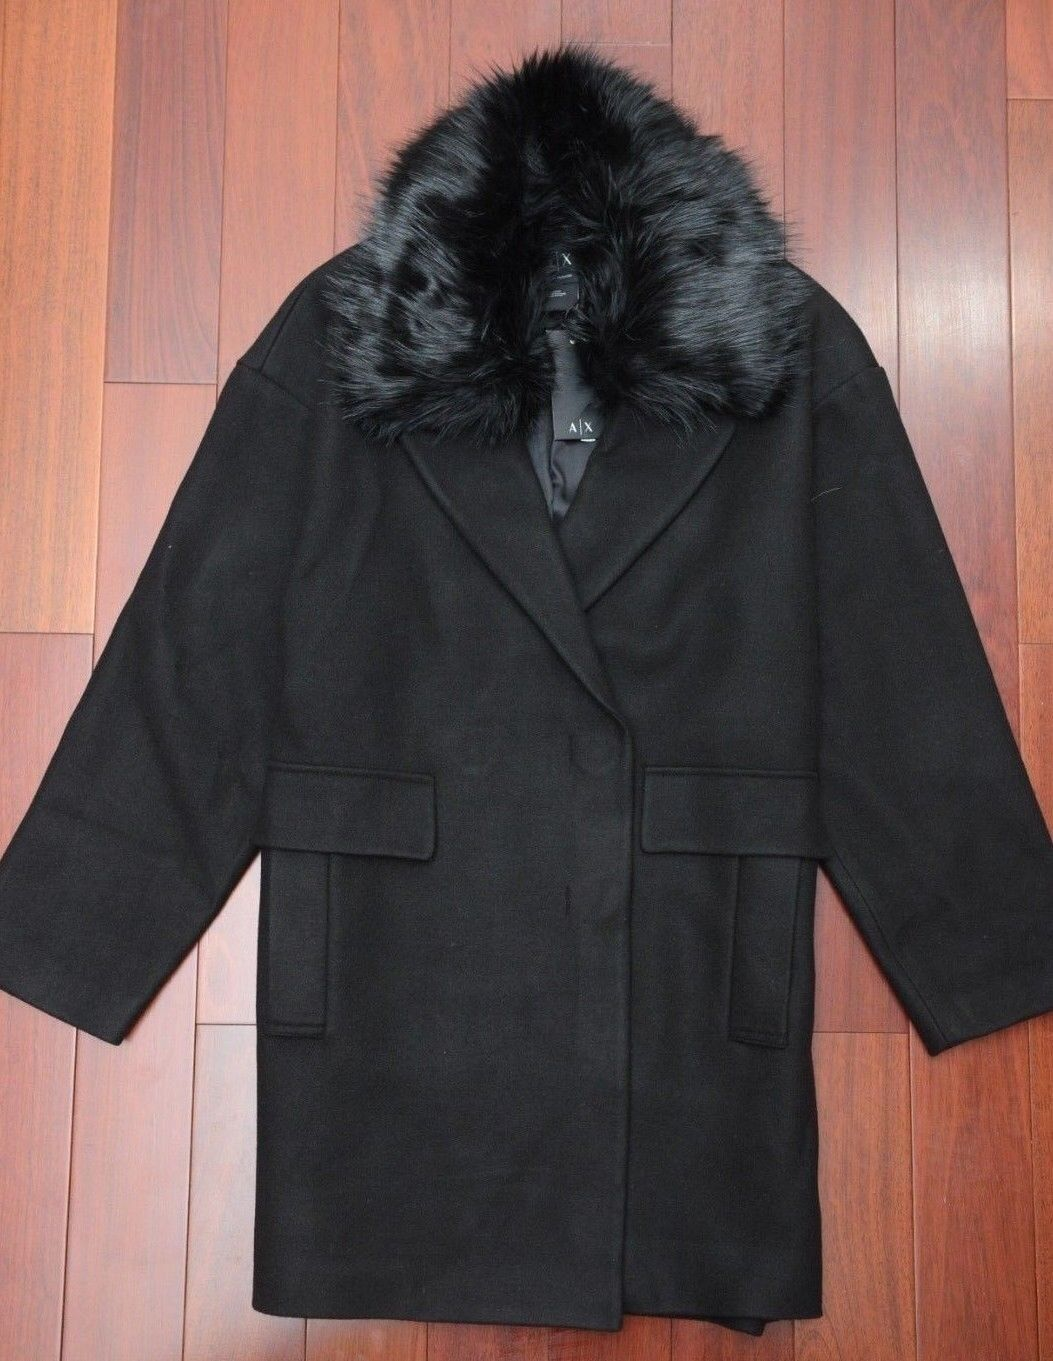 Armani Exchange A X Women's Faux Fur Collar Wool Acrylic BLK Peacoat New M